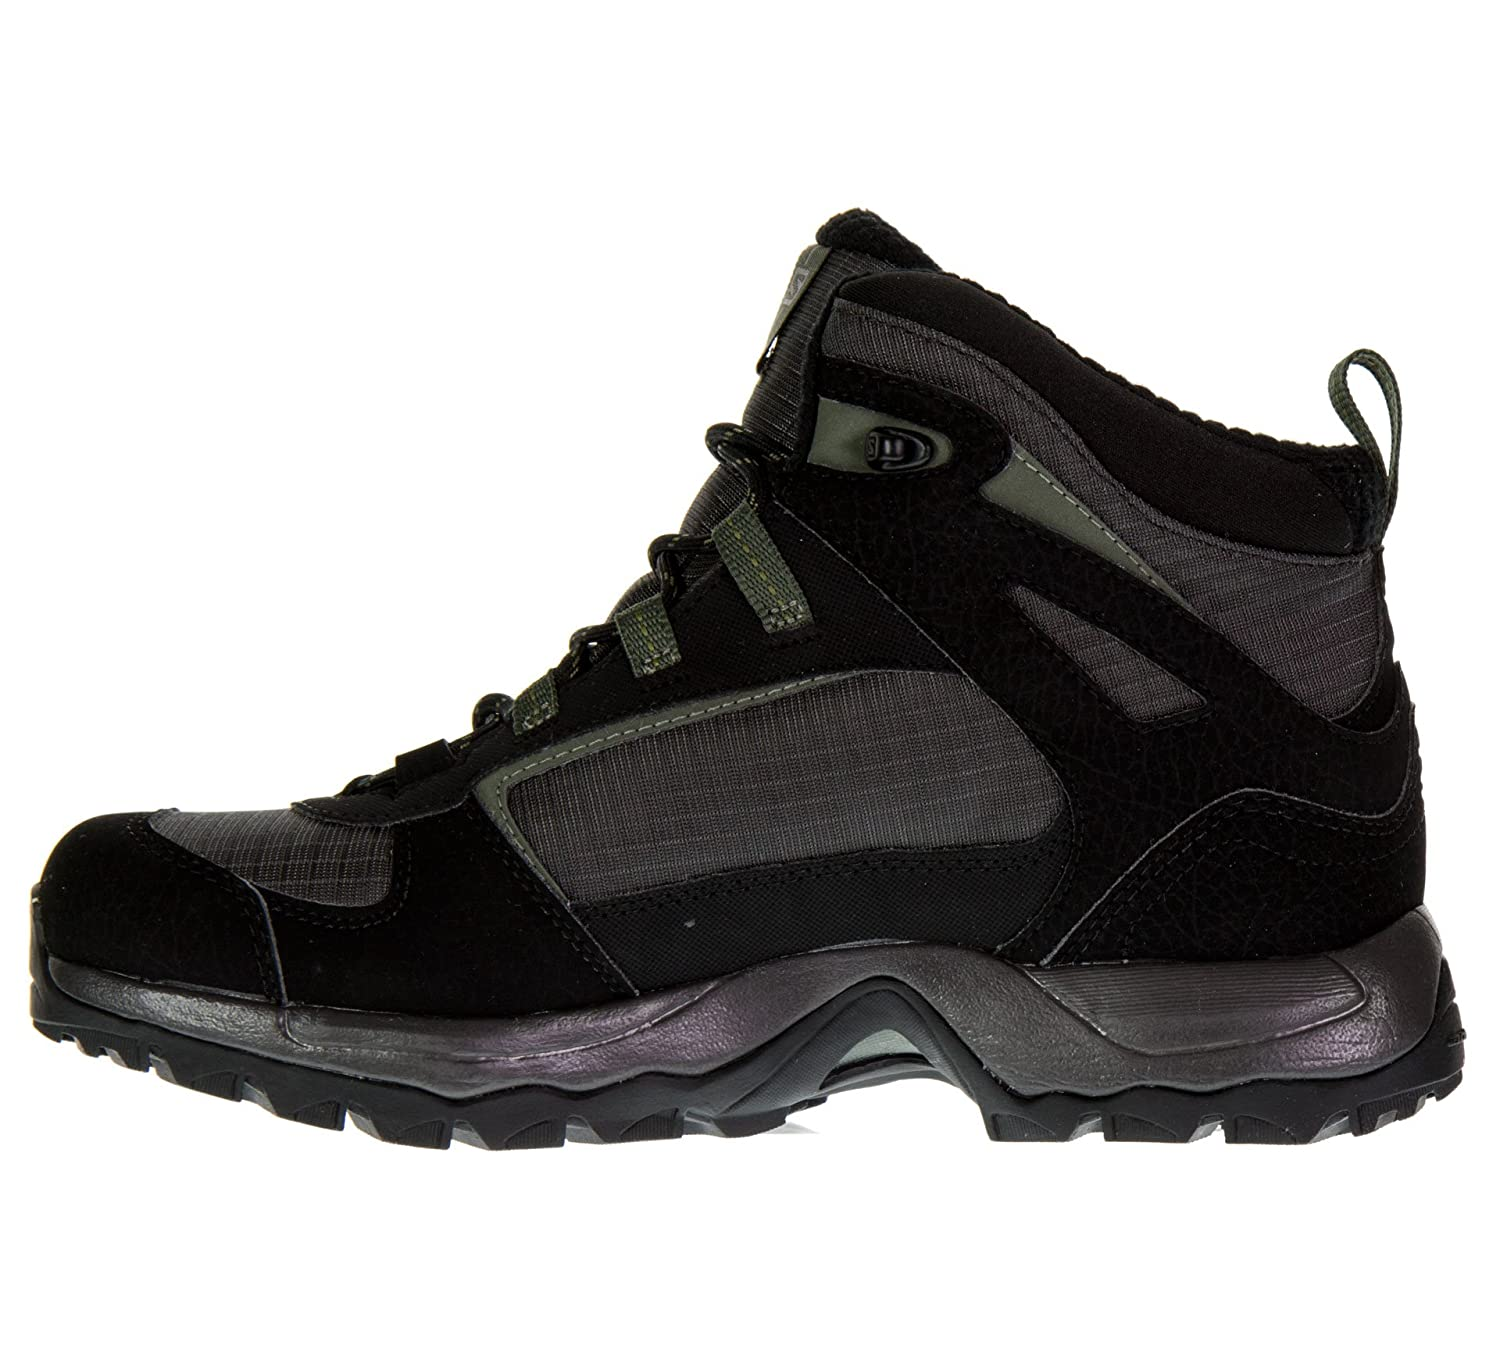 Salomon Madawaska TS GTX: Amazon.co.uk: Sports & Outdoors